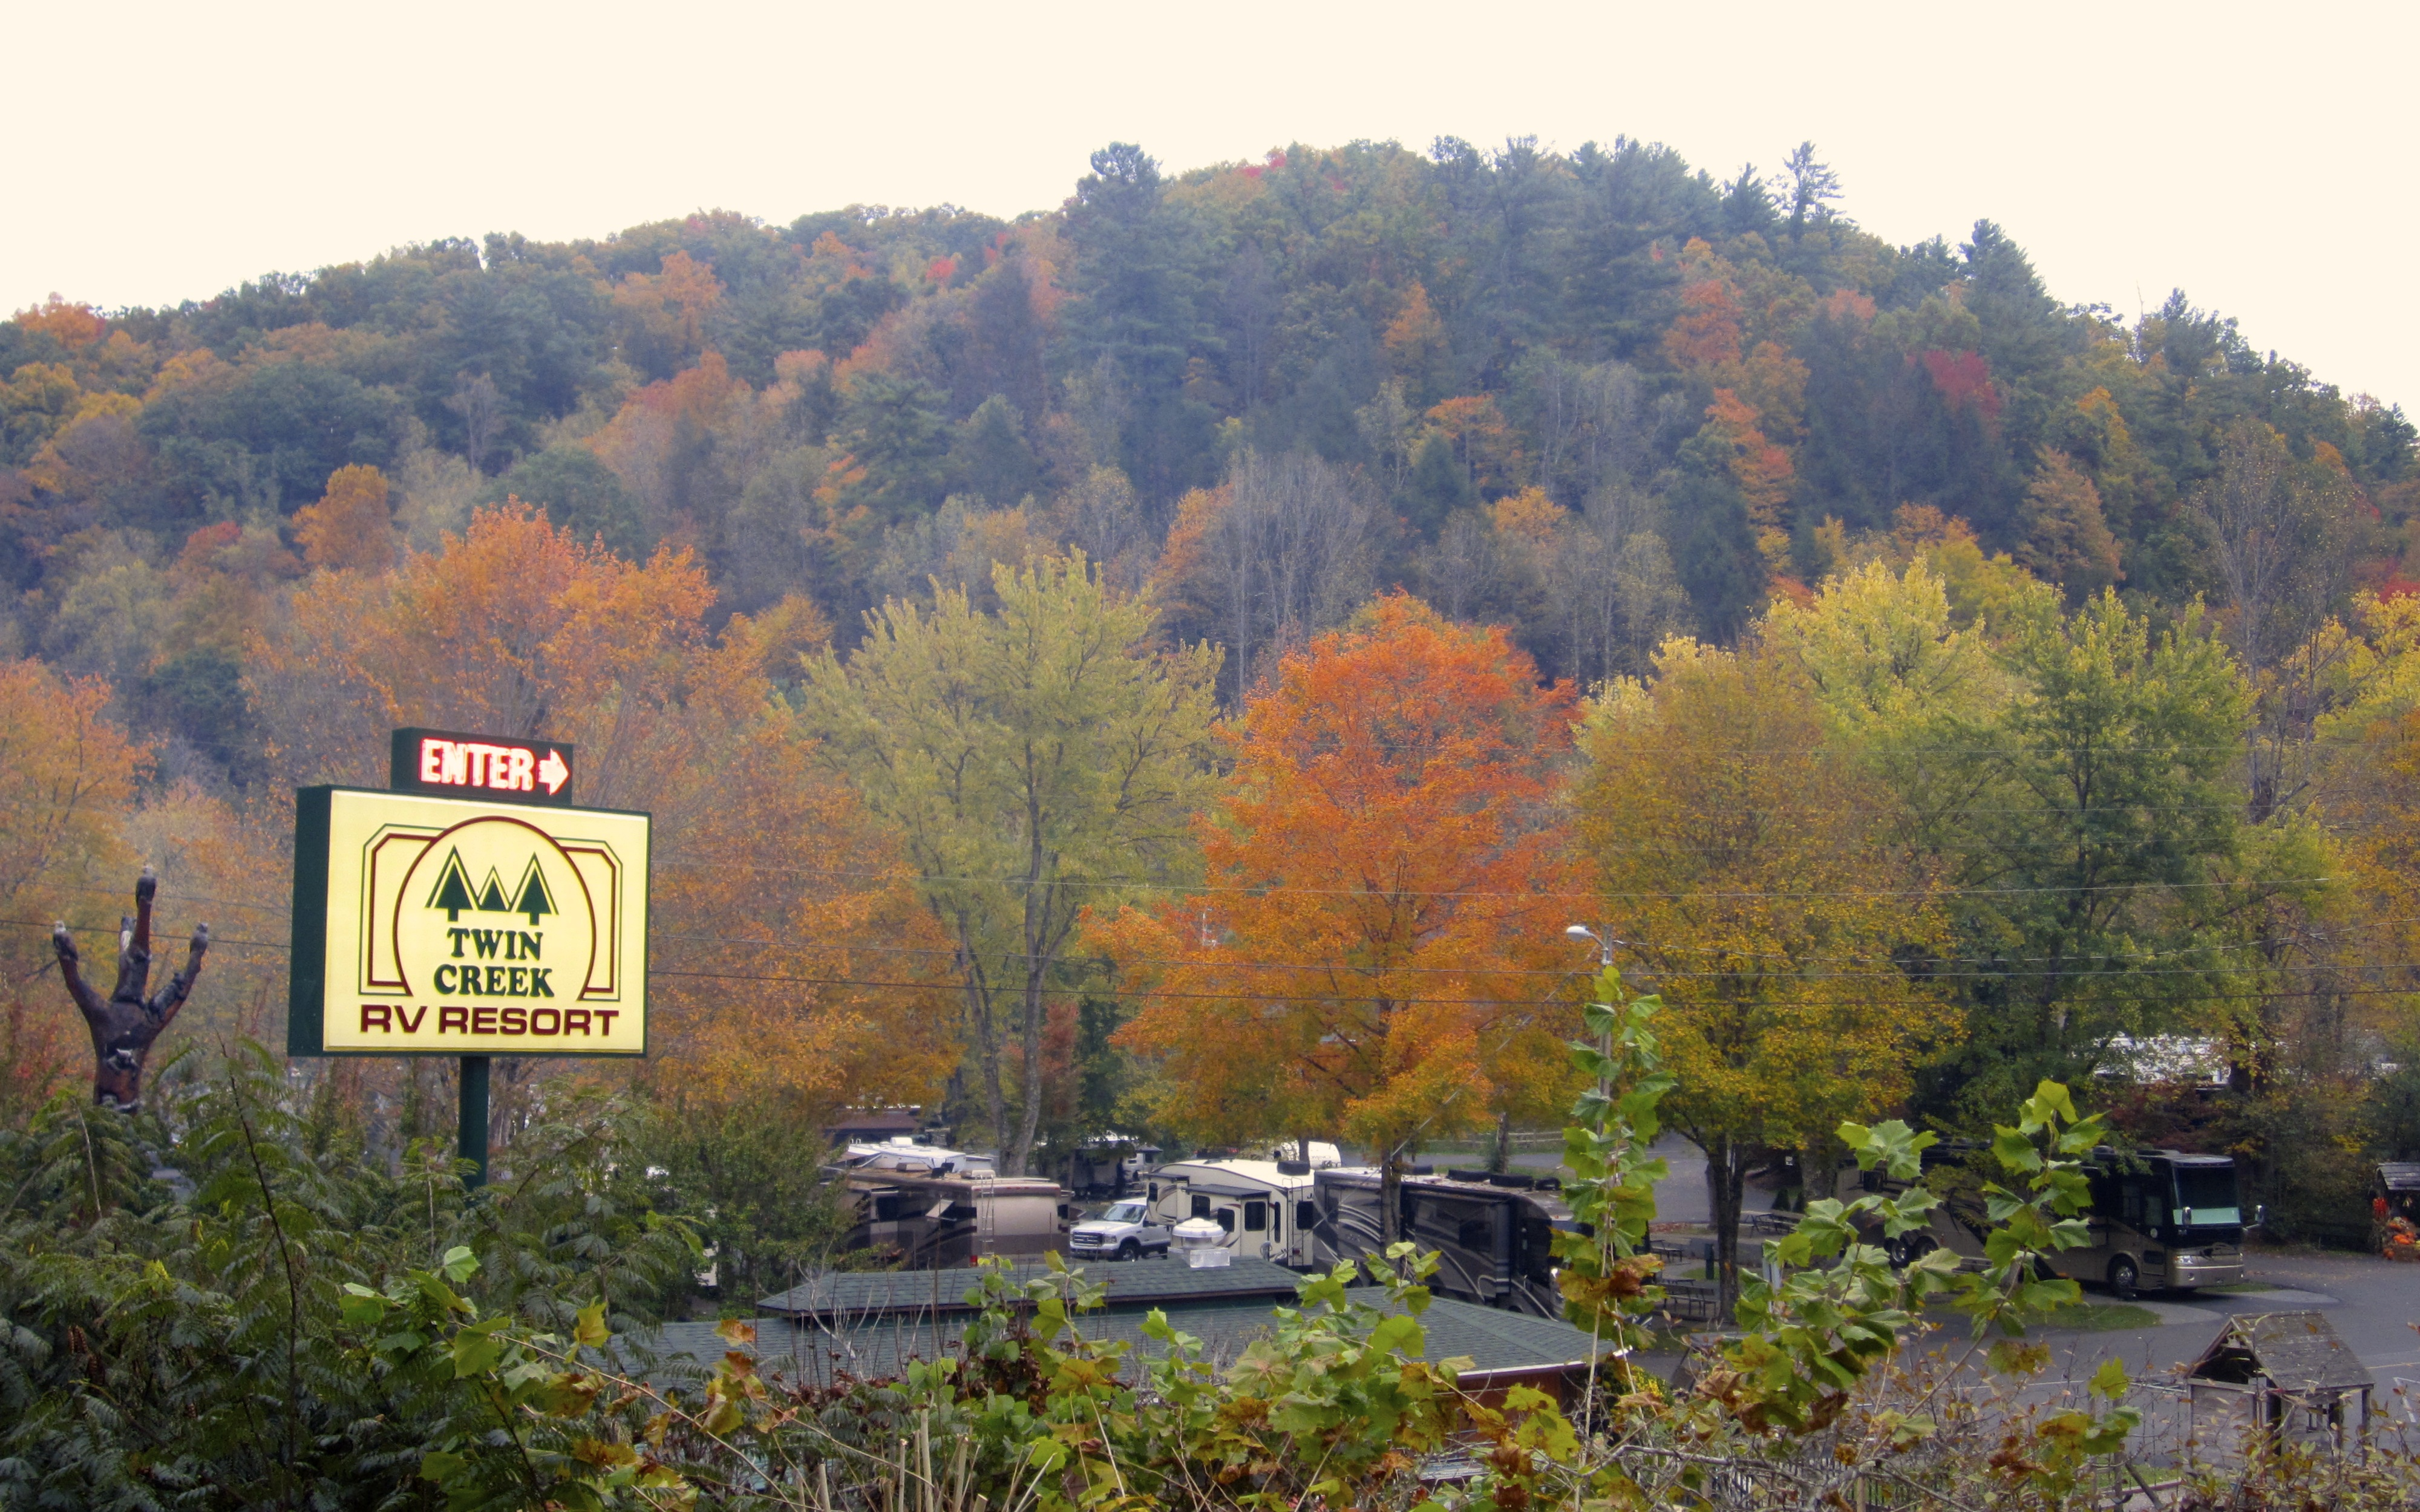 twin creek rv resort,tennessee gateway to the great smoky mountains!